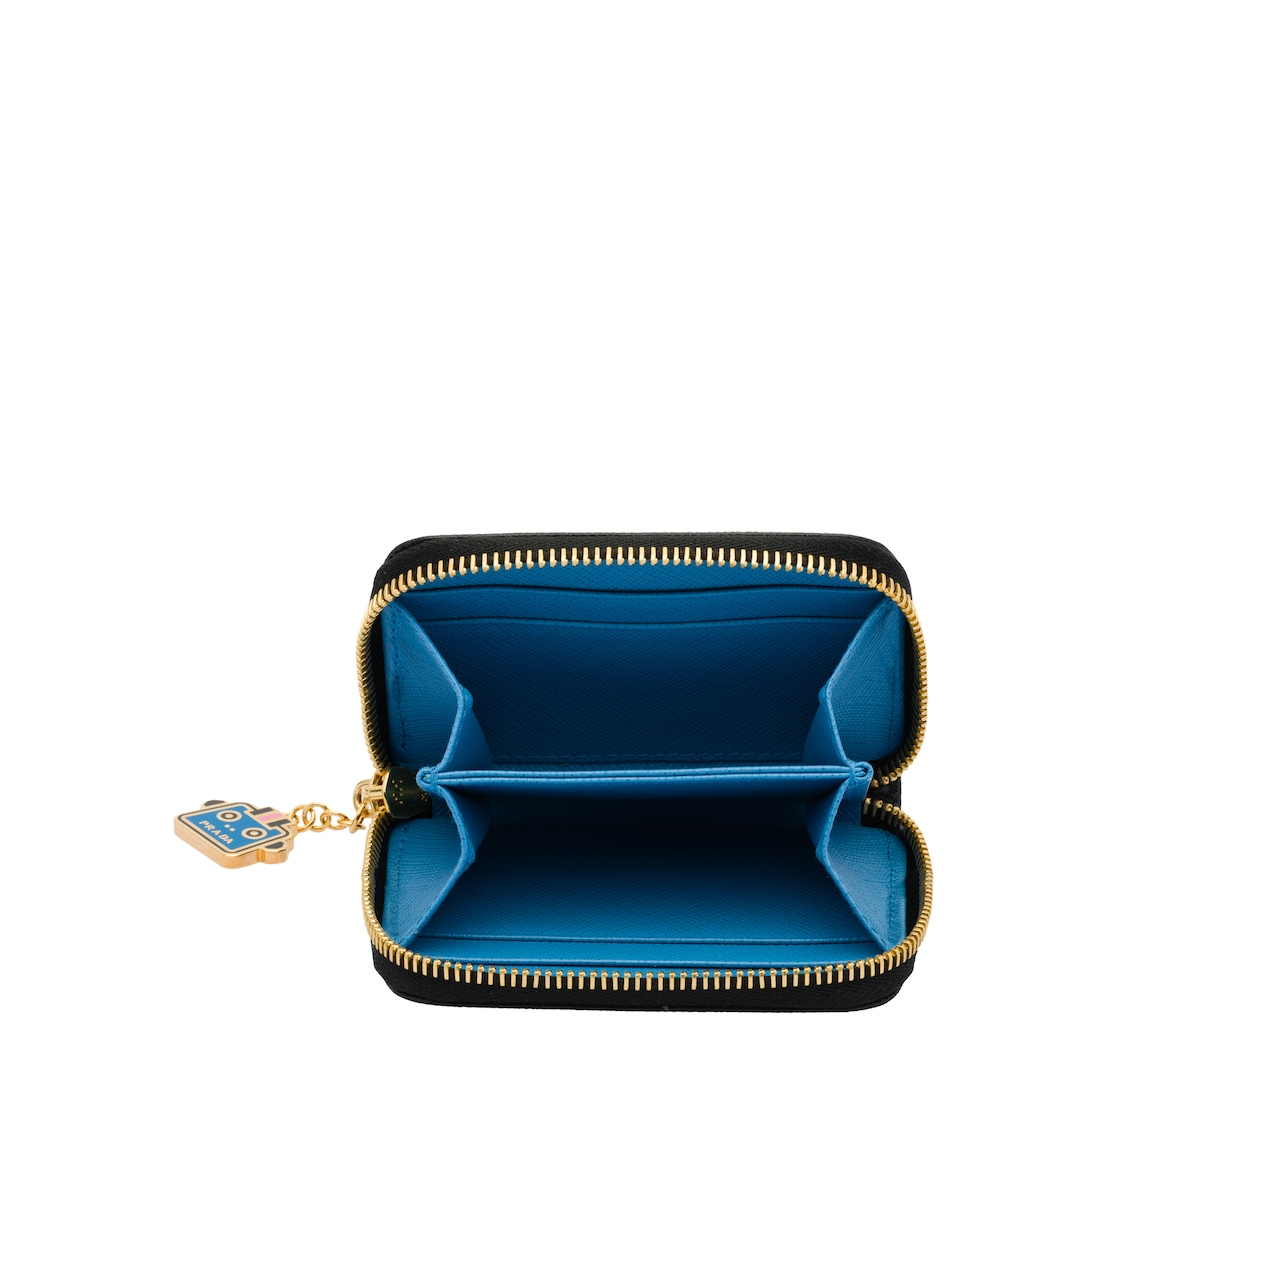 Saffiano leather coin purse with charm